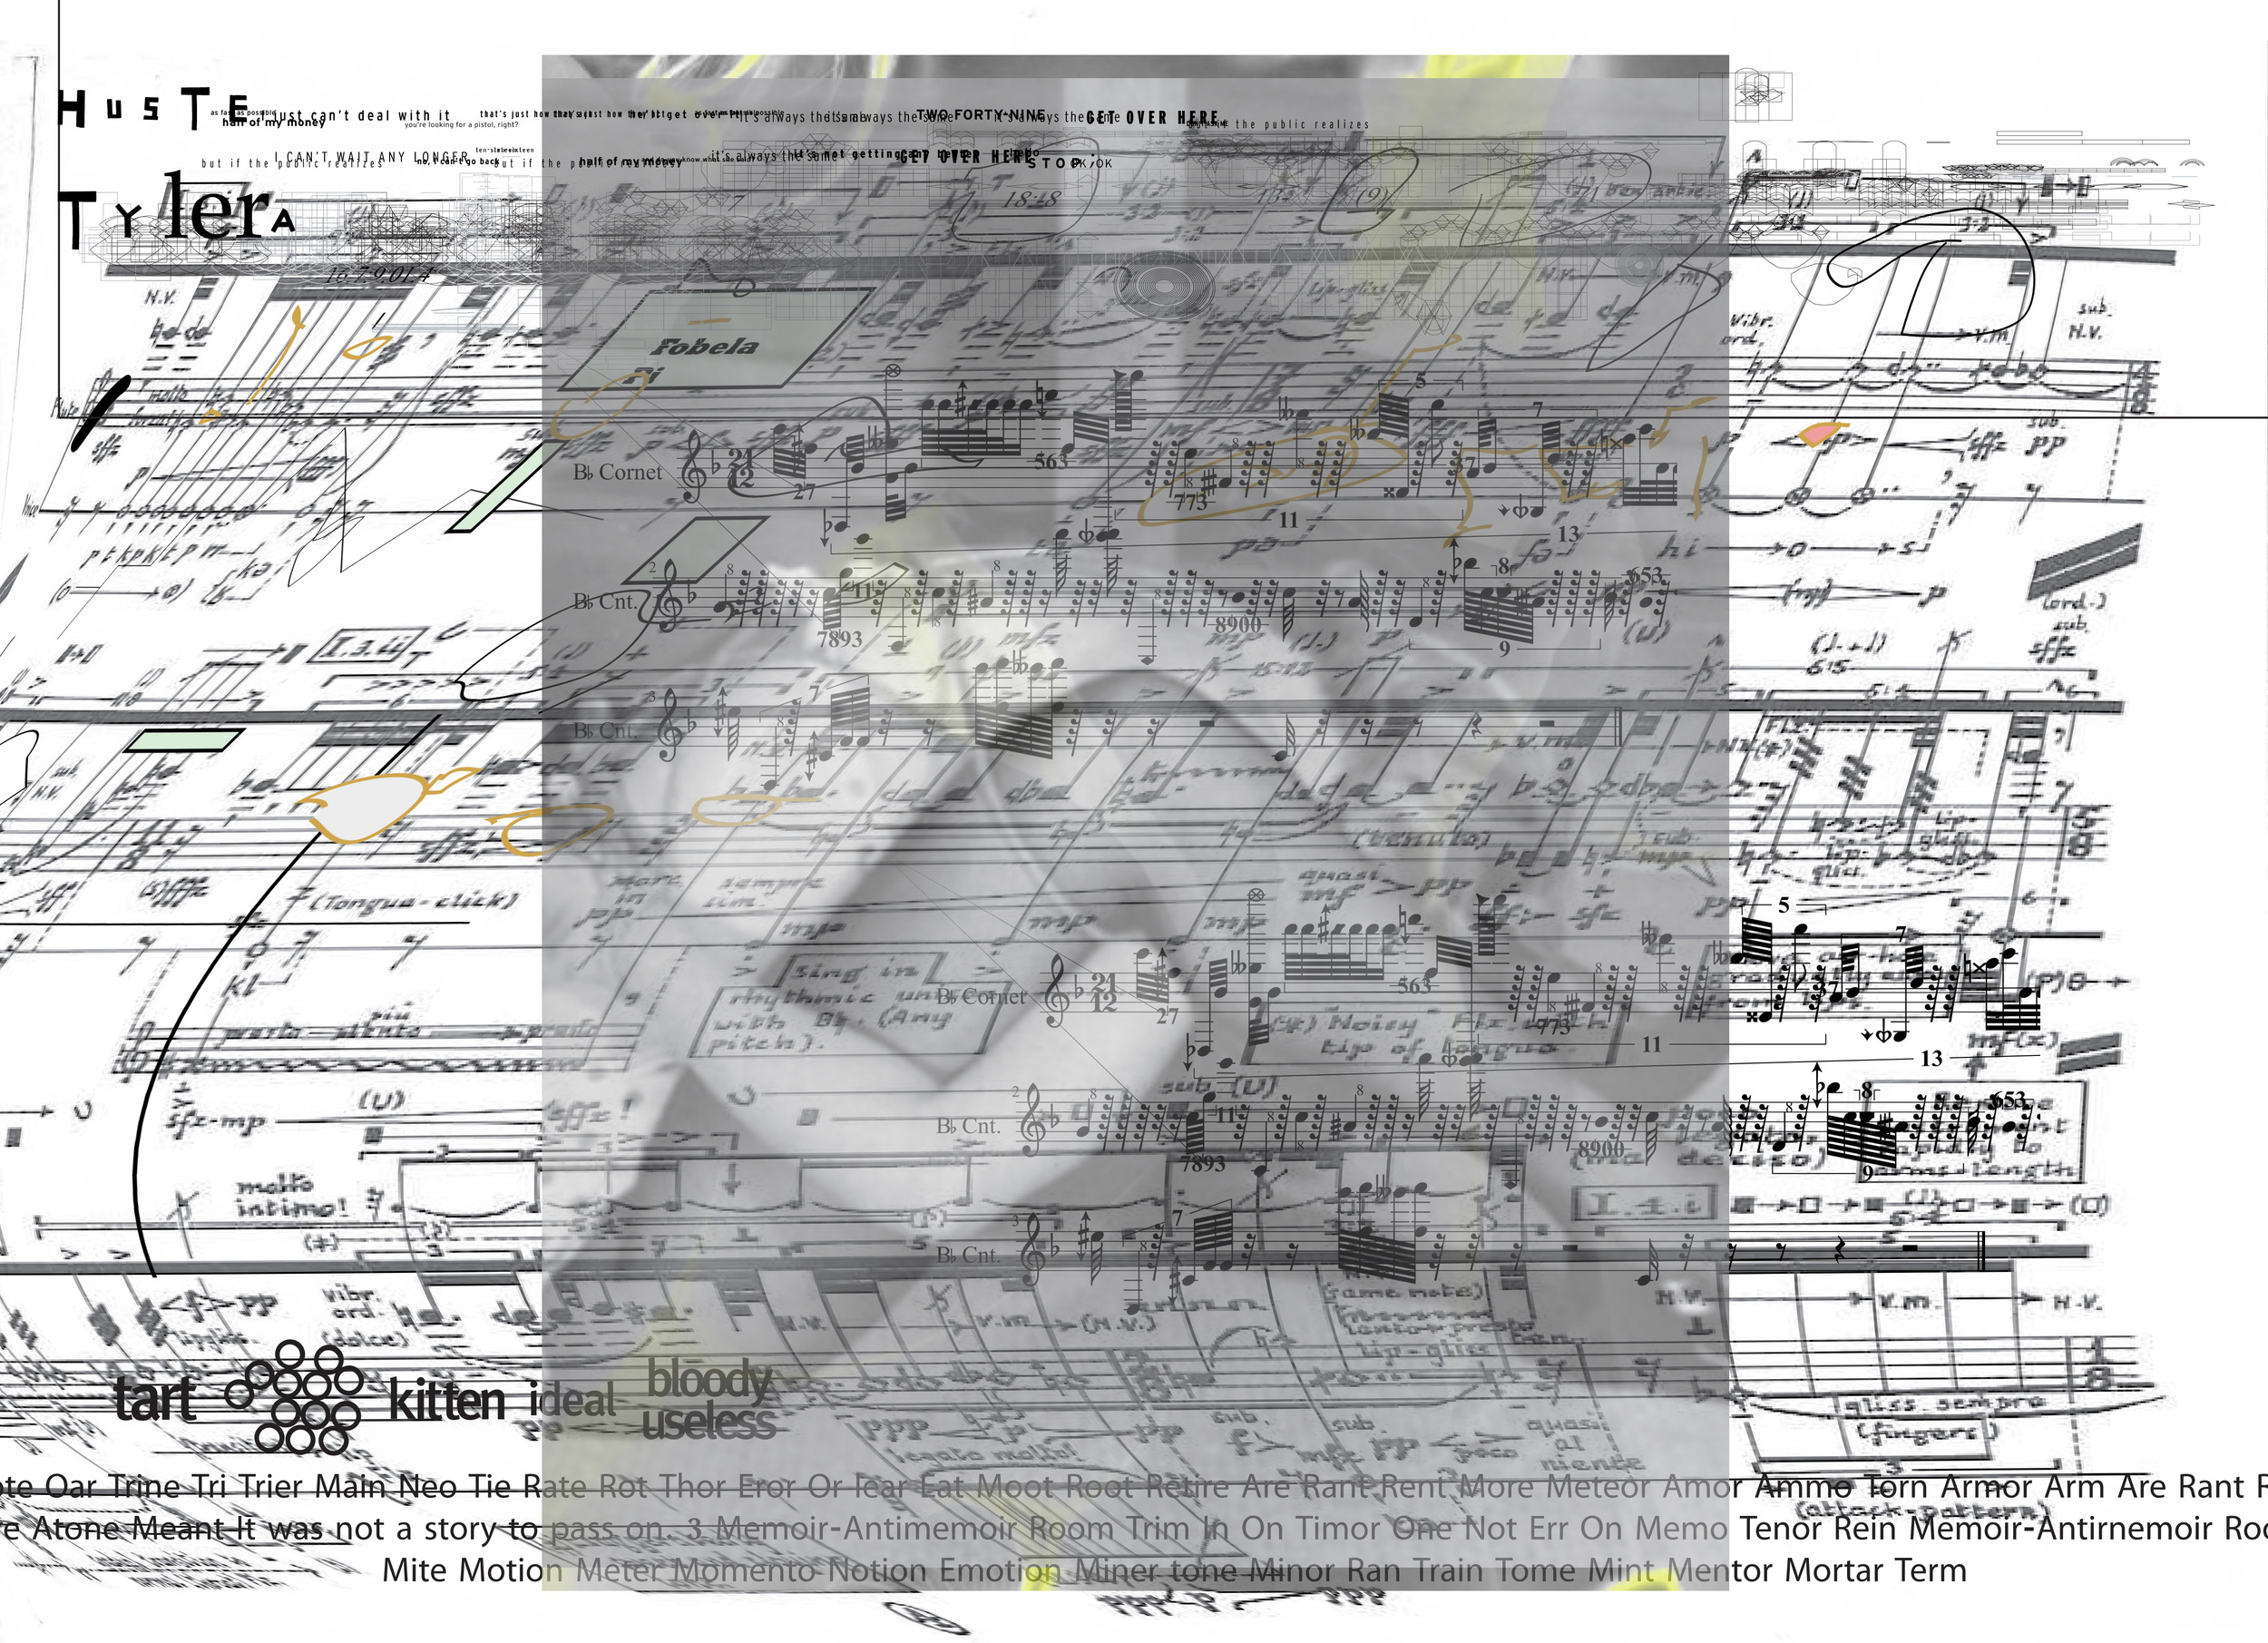 """SCORE: """"The Conjunction of Her Thighs with the Titanium Tipped Instrument Heads"""" Scored for Violin, Viola de Gamba, B Flat Cornet, Single Voice (Mezzo Soprano), and Vibraphone. 2013"""